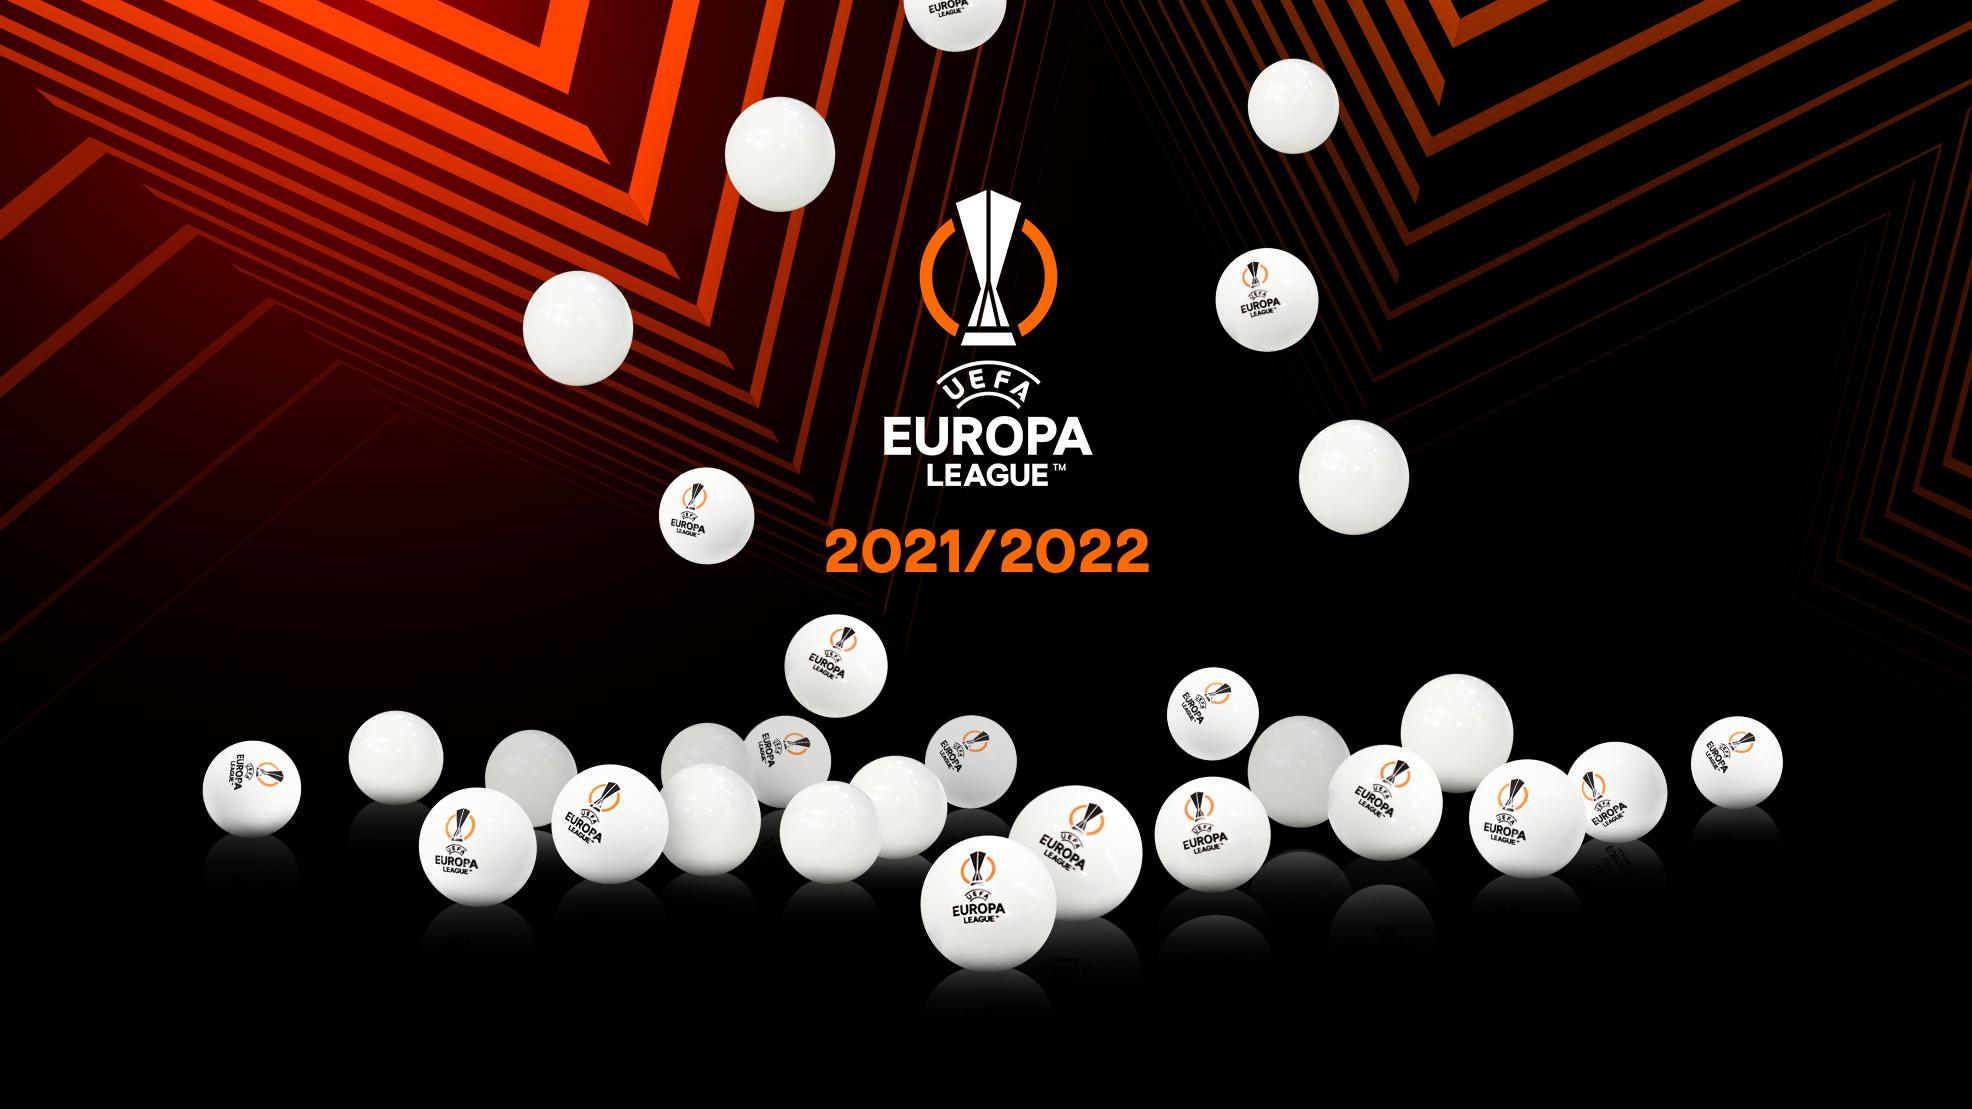 Europa League group stage draw: time, teams and streaming - UEFA.com